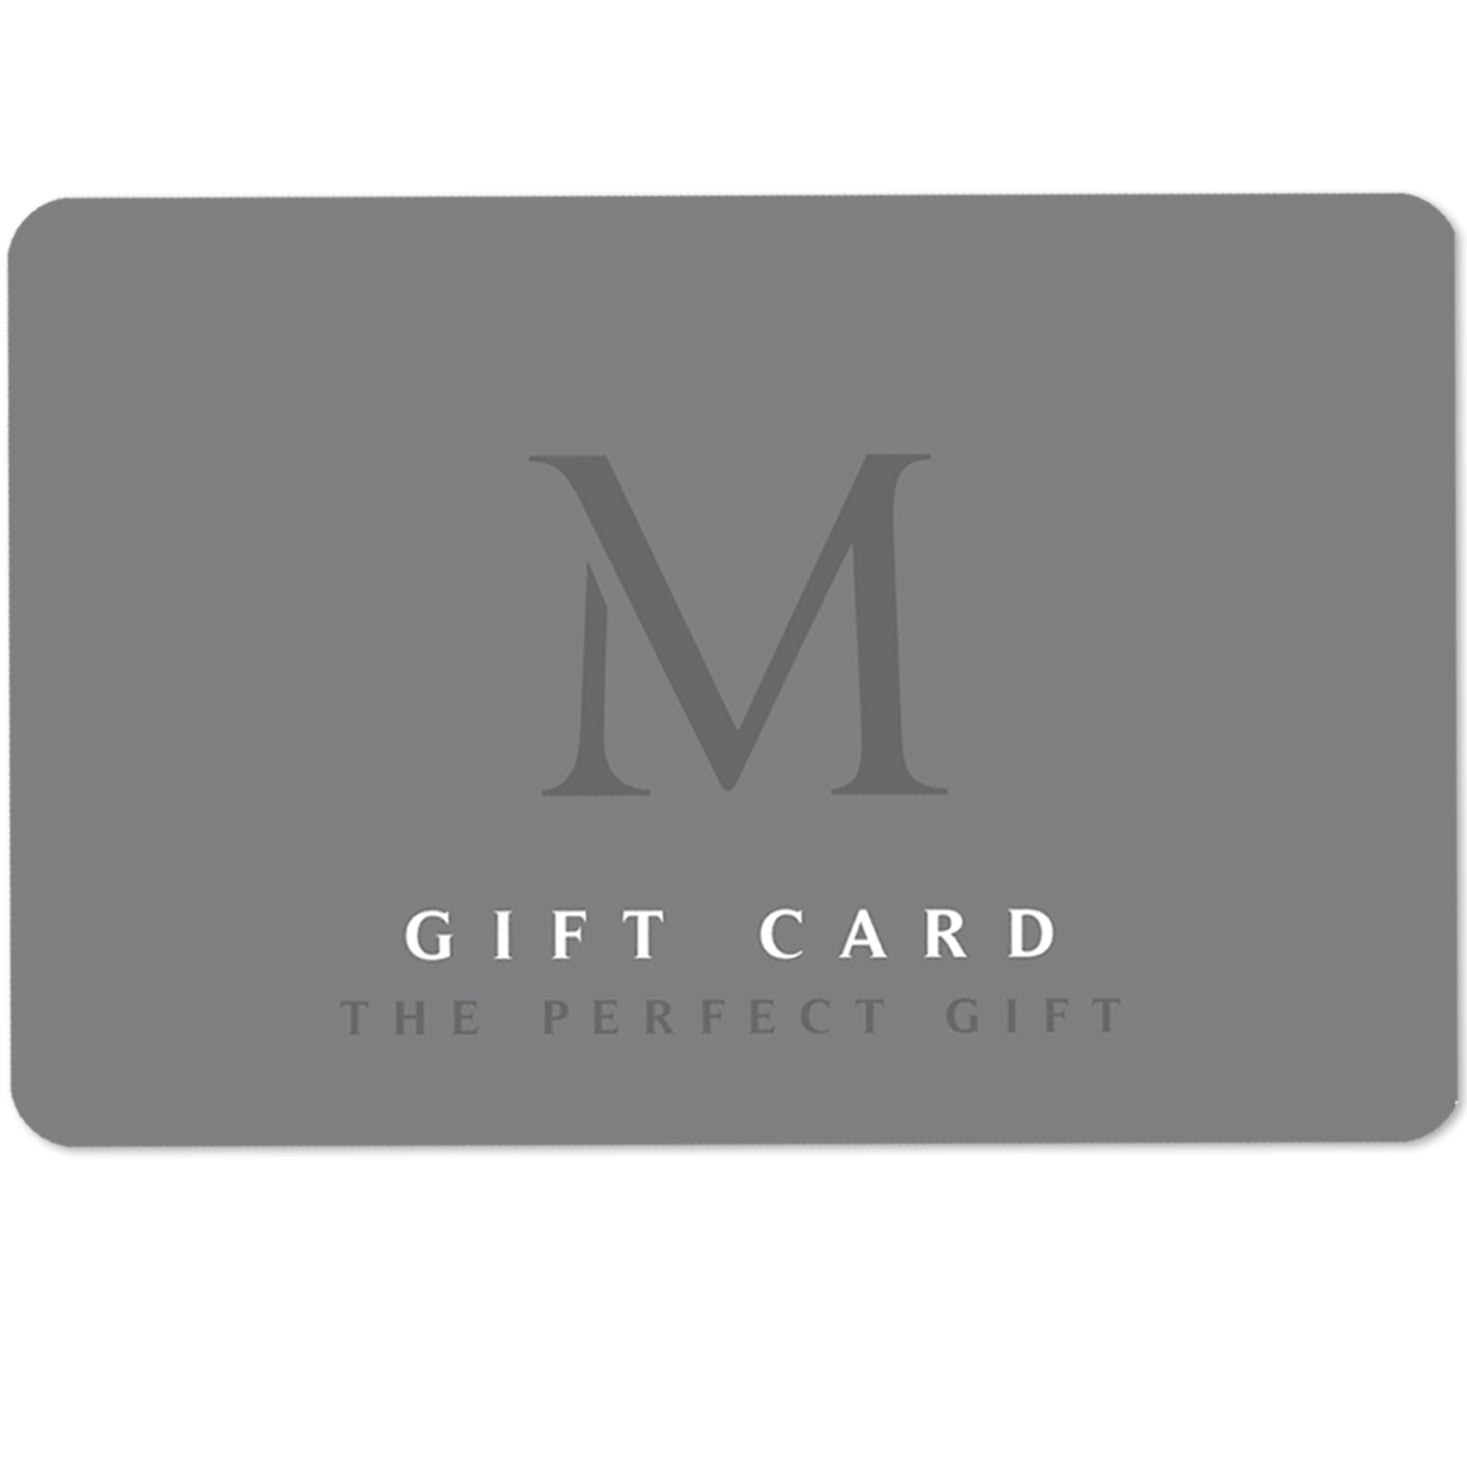 Gift Card - Digital Voucher